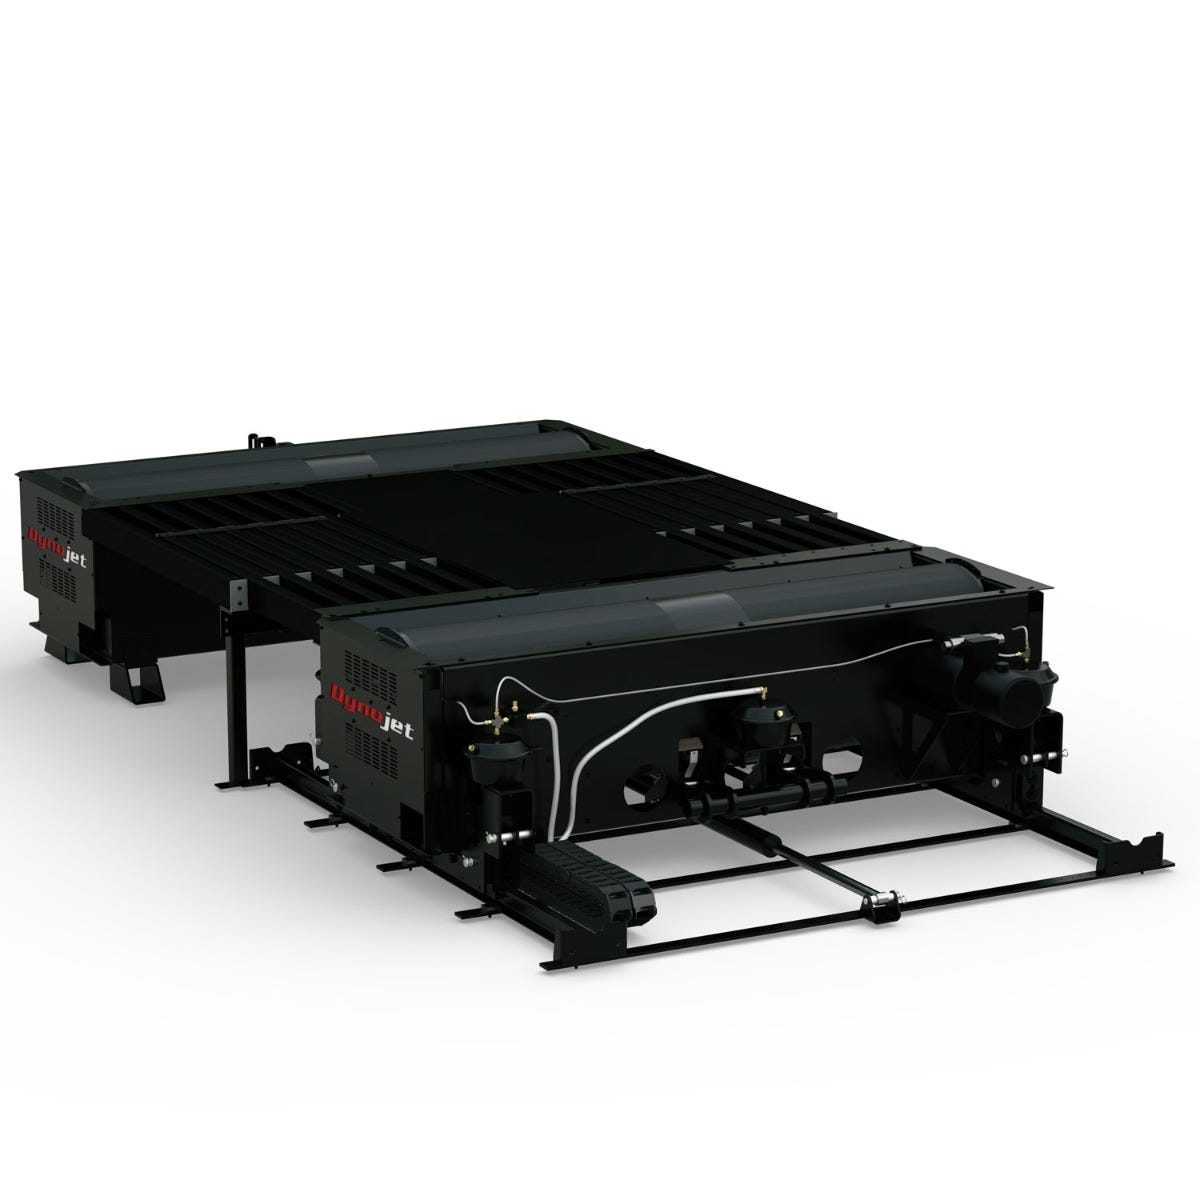 AWD Automotive Chassis Dynamometer Model 424x